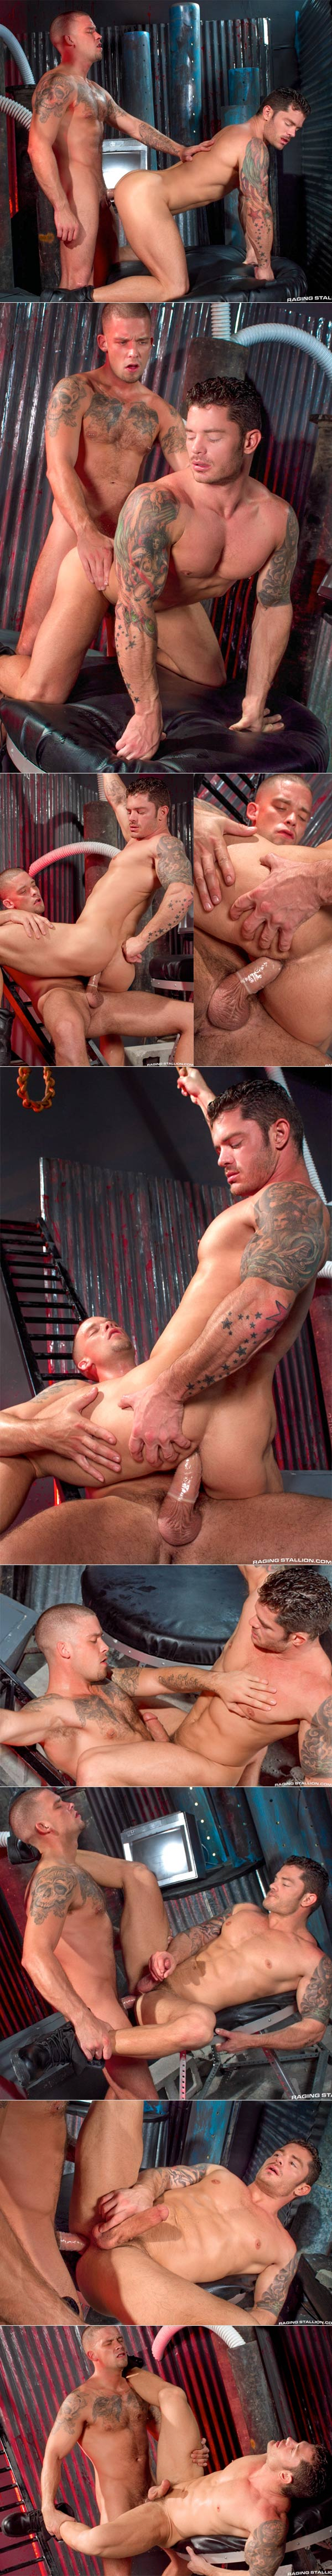 Cock Tease (Caleb Colton & Mitchell Rock) at Raging Stallion